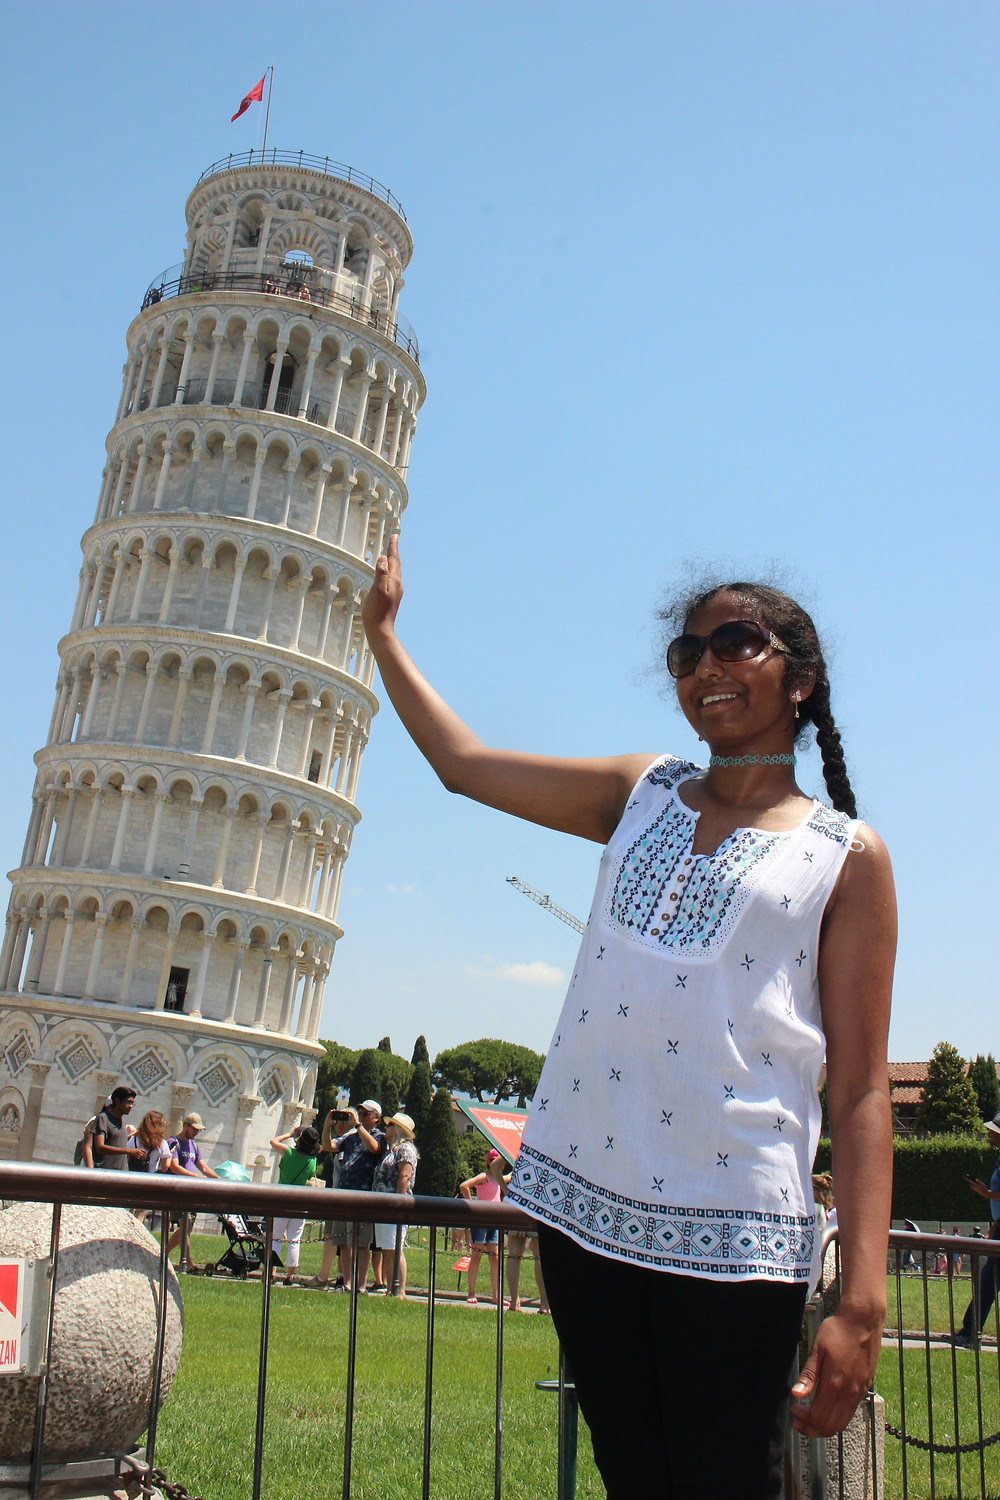 A picture of me holding the Leaning Tower of Pisa